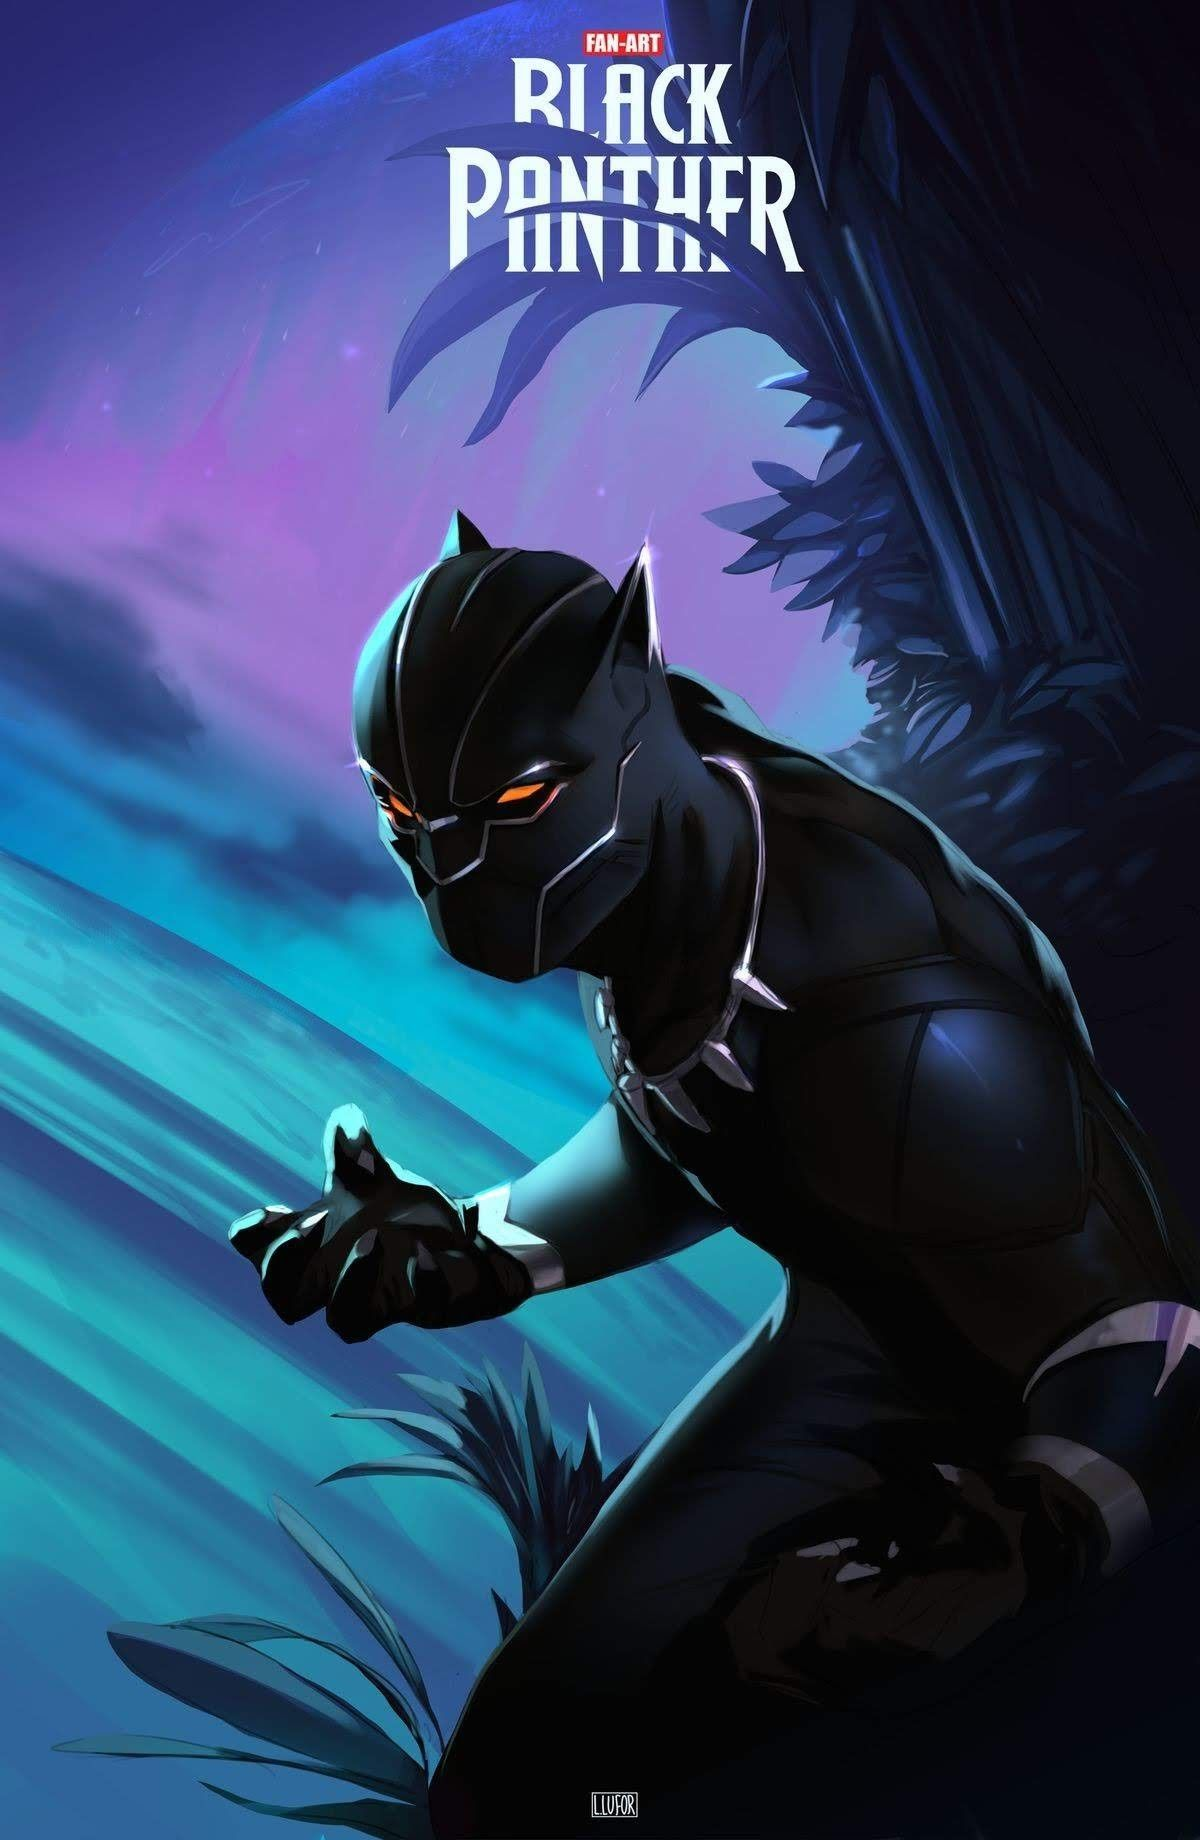 List of Cool Black Panther IPhone Wallpaper for iPhone 11 Pro Max This Month